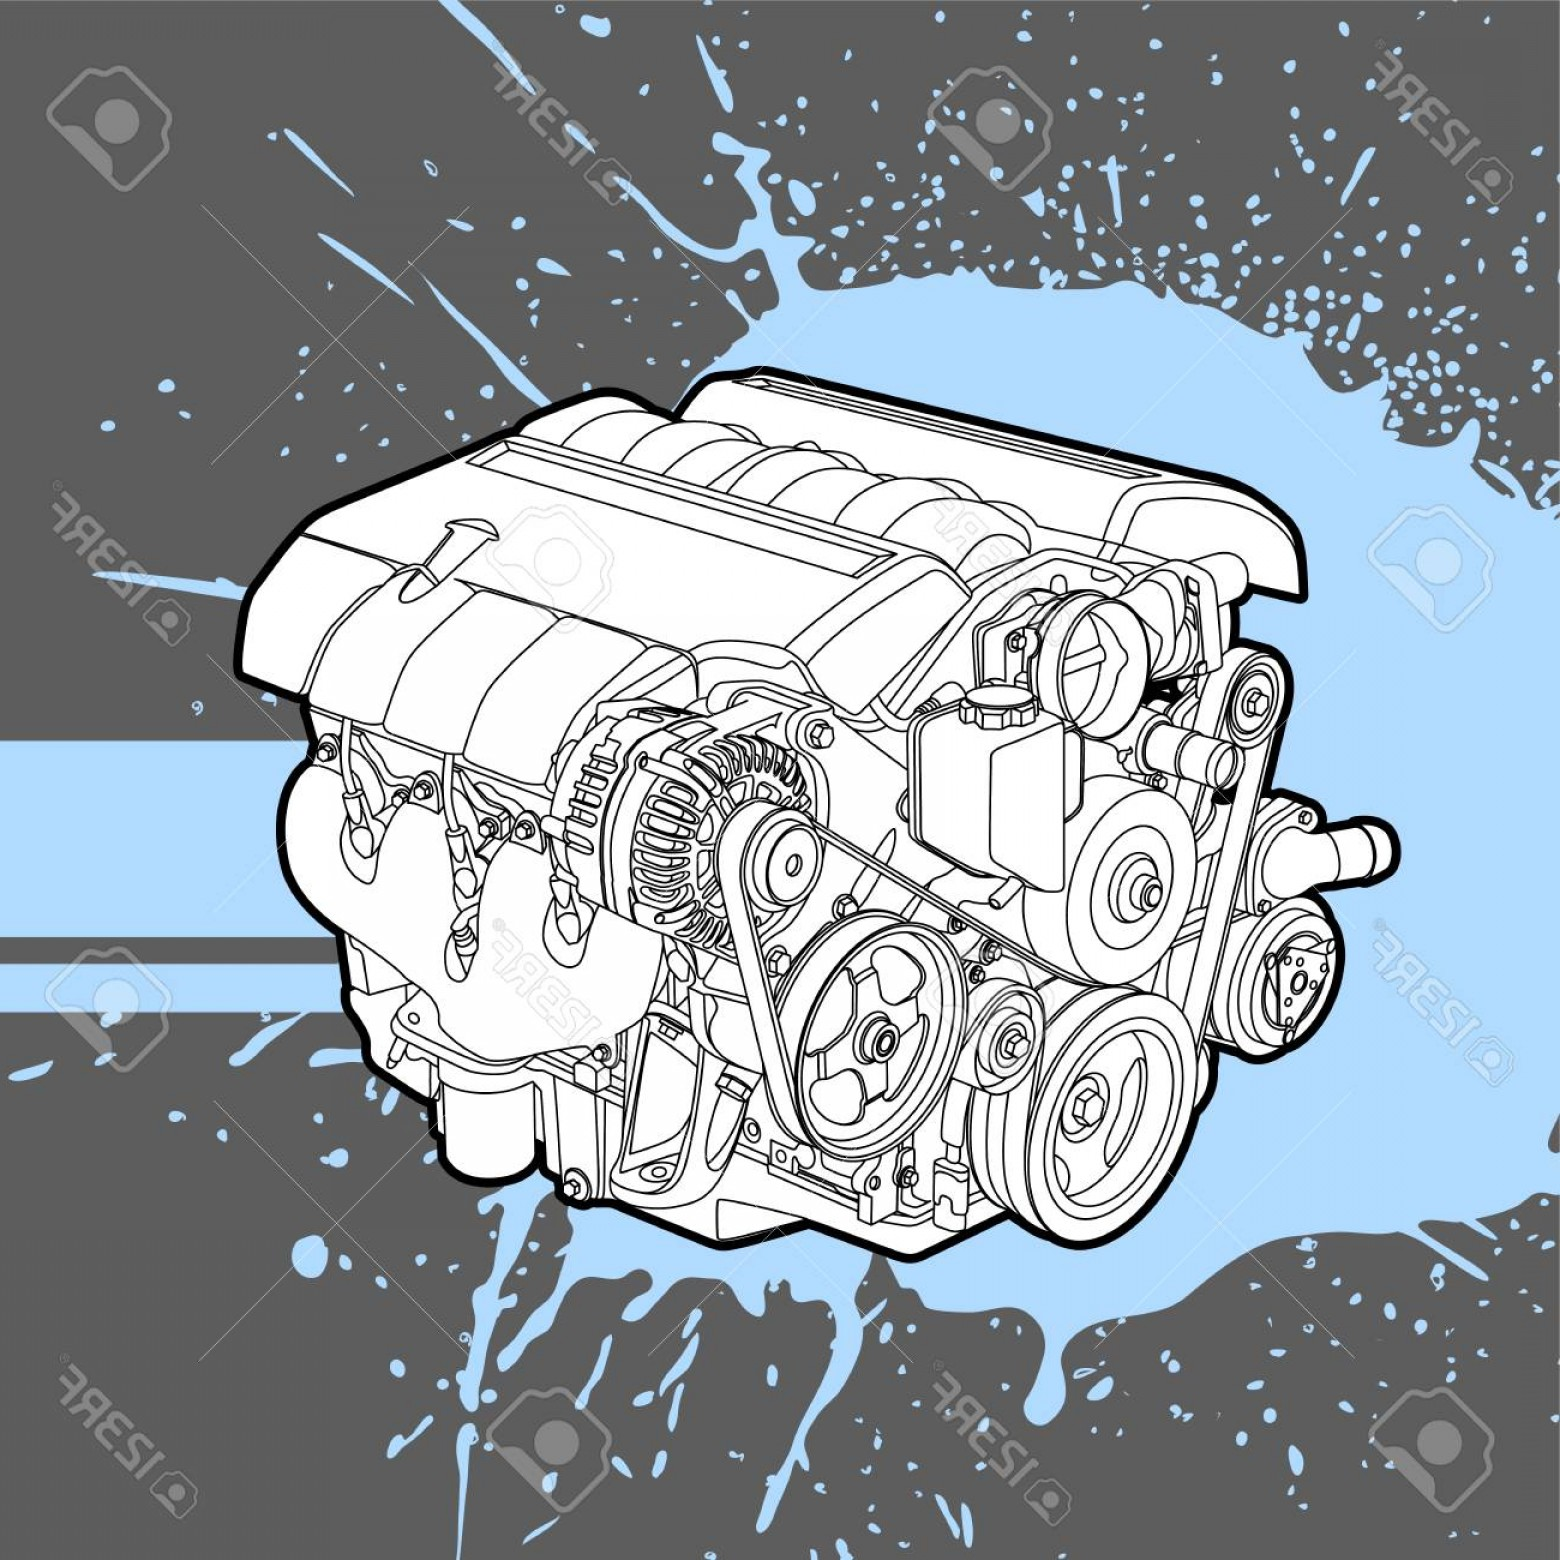 Combustible Engine Vector: Photostock Vector The Internal Combustion Engine From The Car Vector